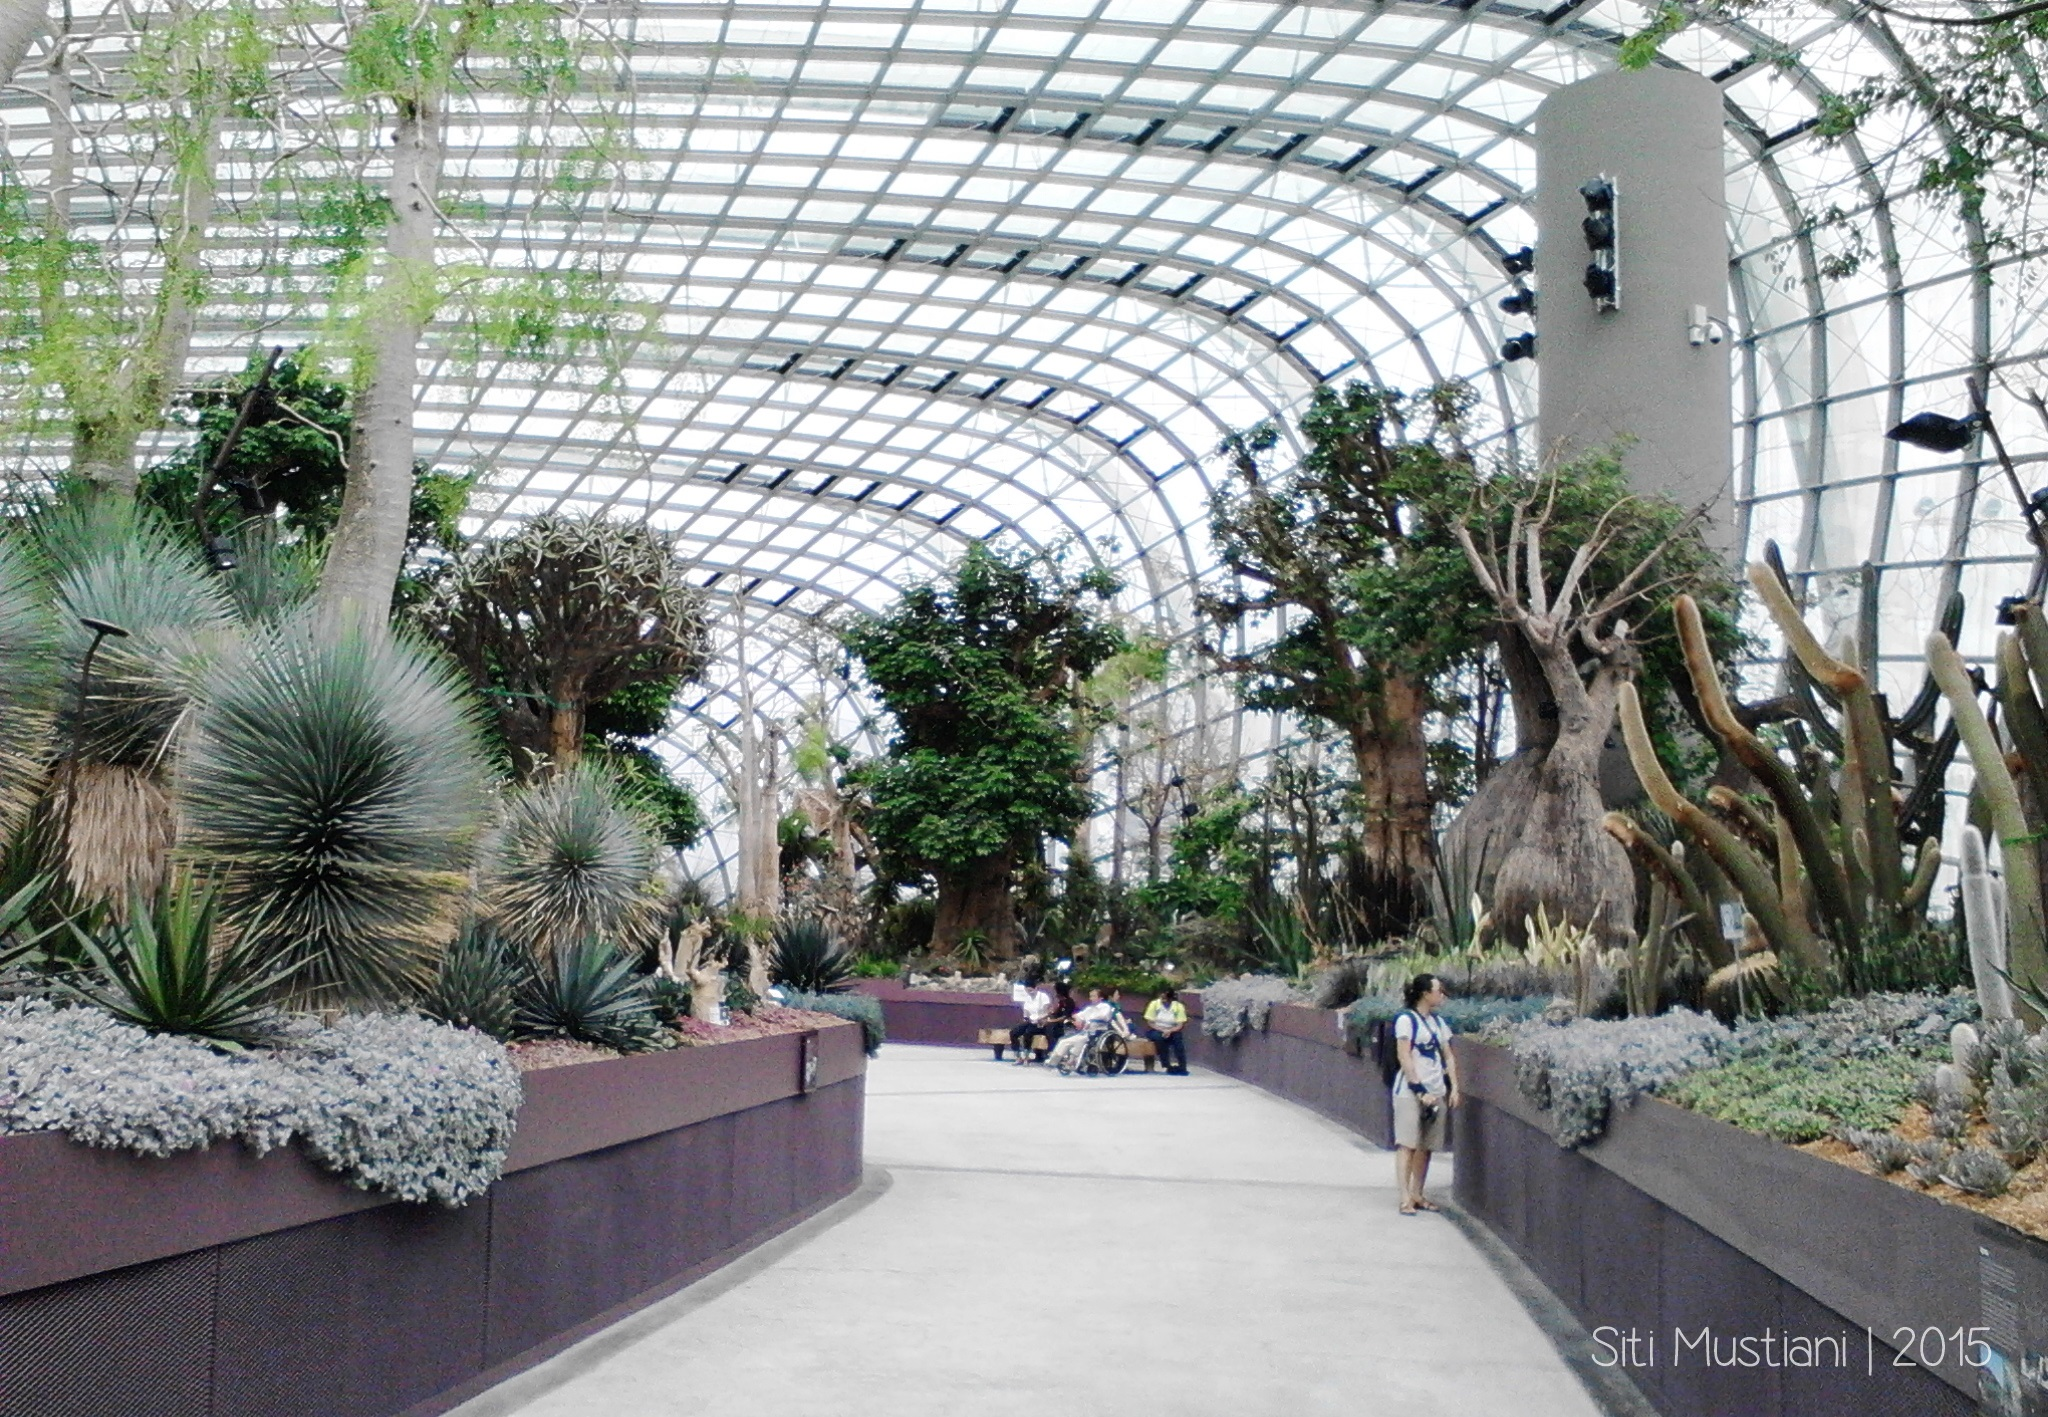 Flower Dome Garden By The Bay